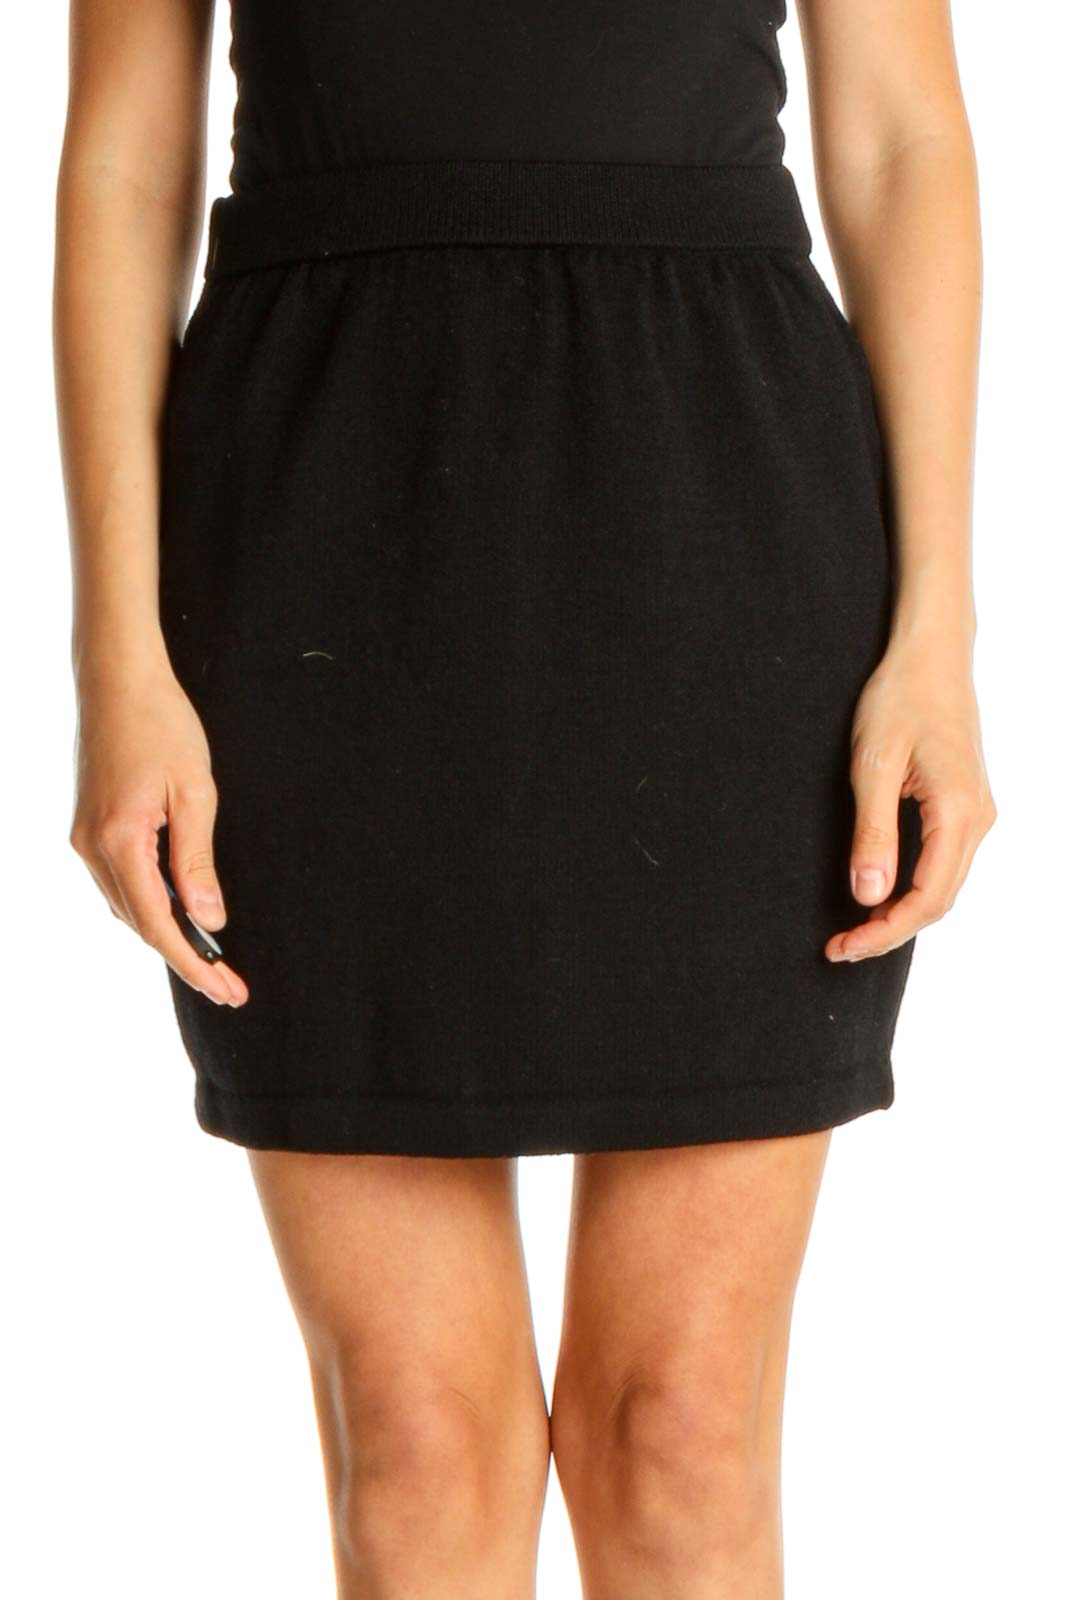 Black Solid Chic Pencil Skirt Front